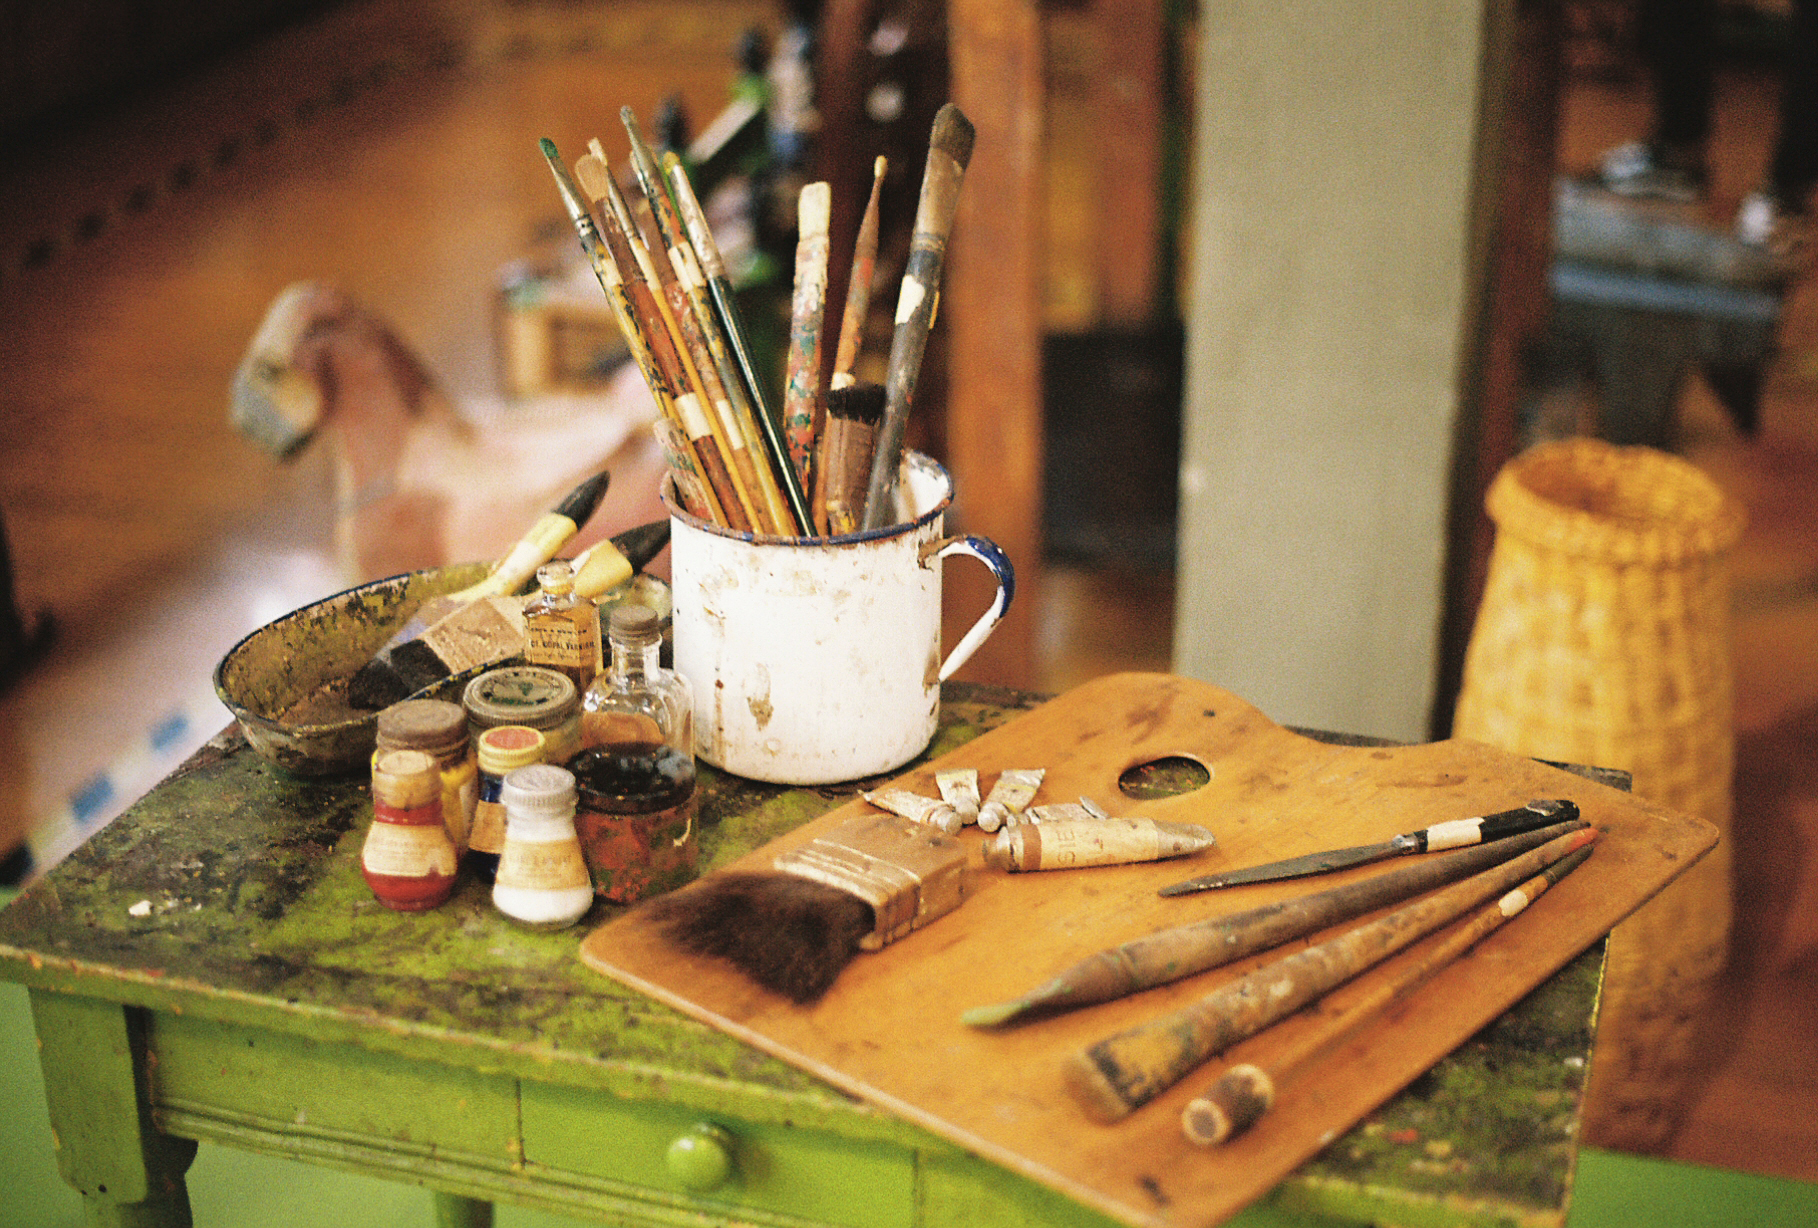 Pigments, paints, brushes and a palette. Inside the studio of Diego Rivera and Frida Kahlo. Mexico City. By Nick Barry, shot on 35mm film.